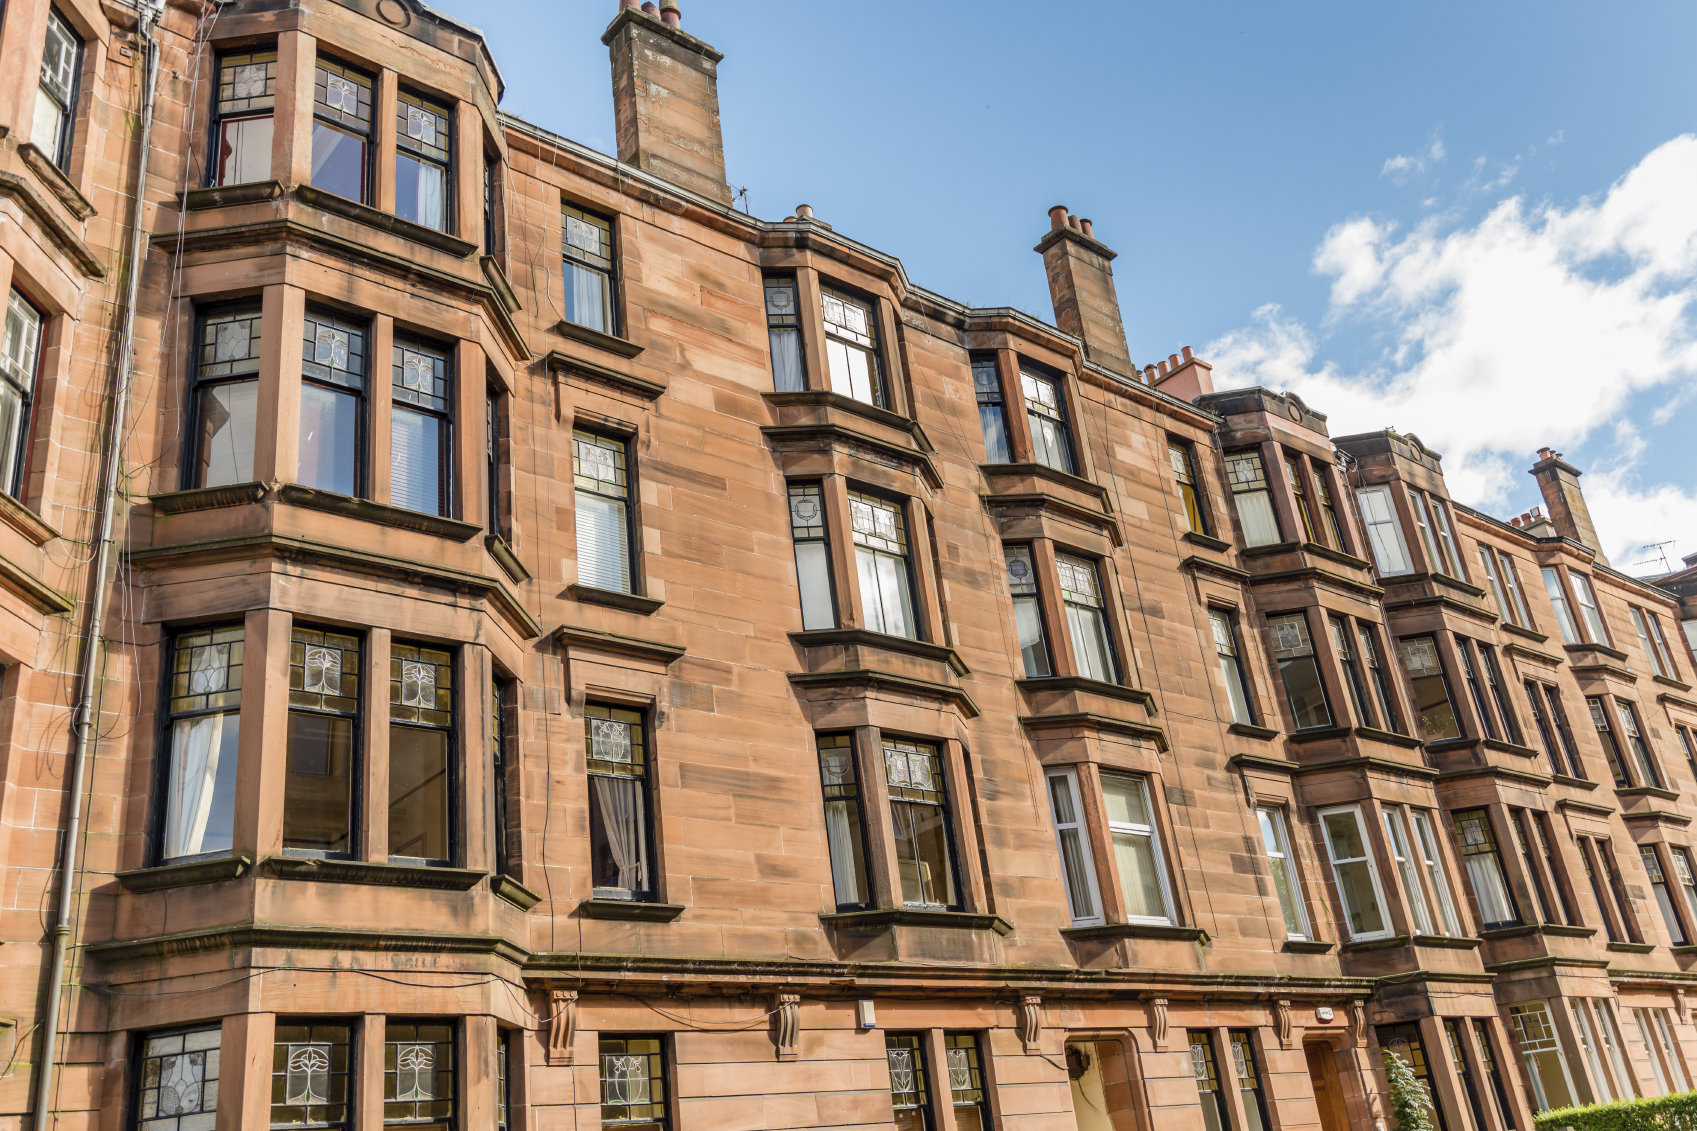 edinburgh council tax single occupancy